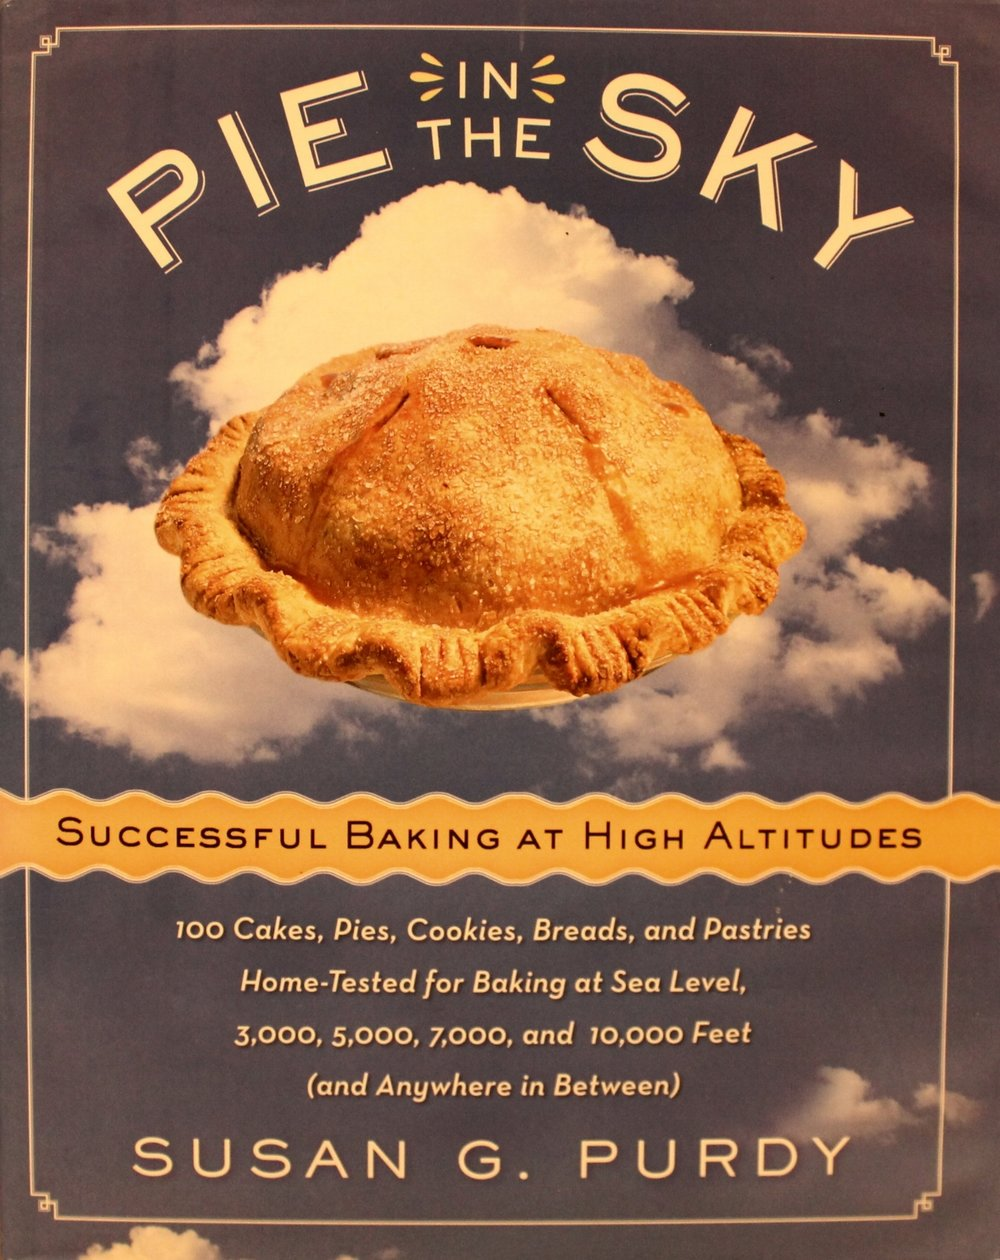 pie in the sky by susan purdy.jpg